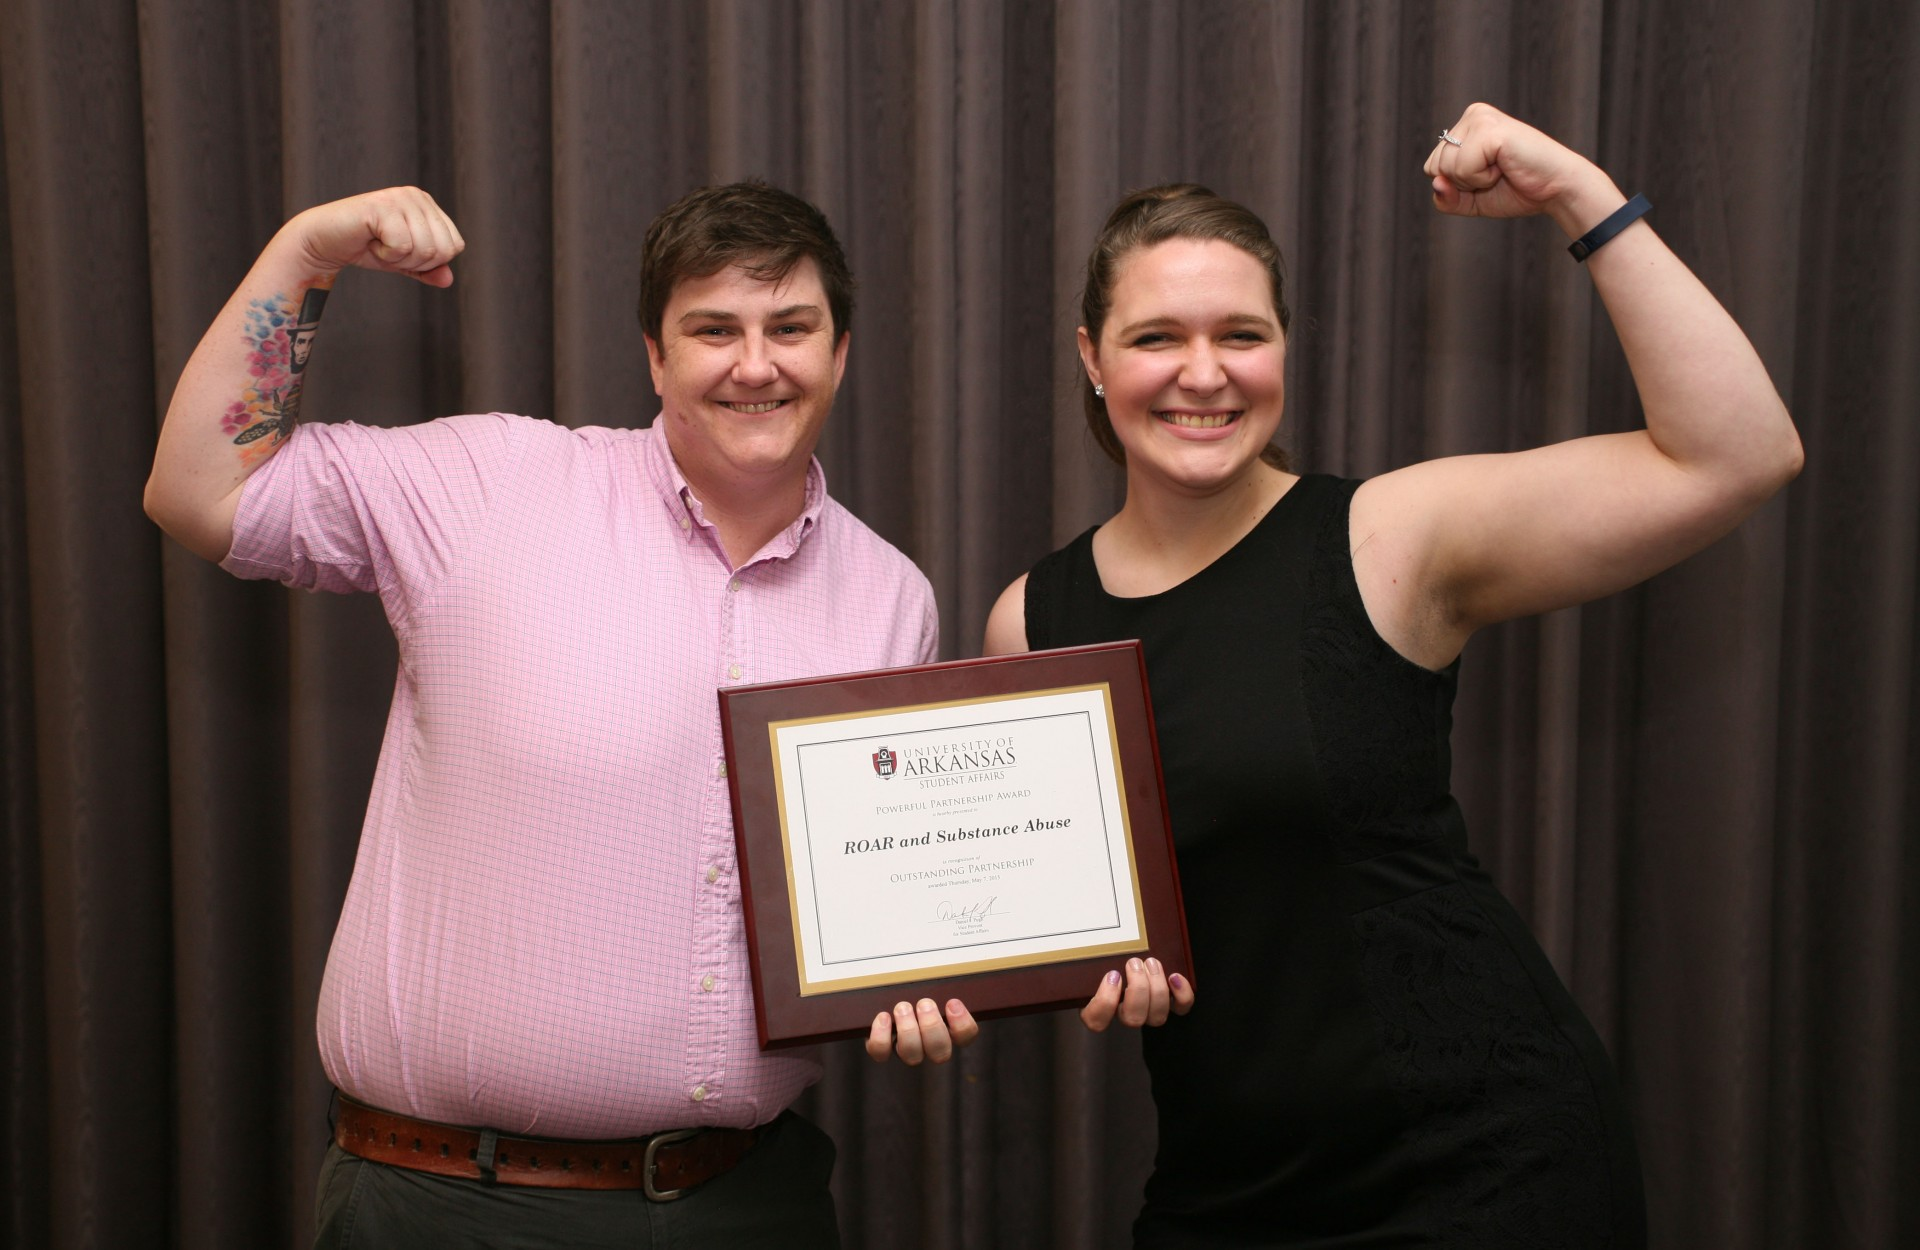 Individuals and departments across the Division of Student Affairs were recognized for outstanding acheivements.